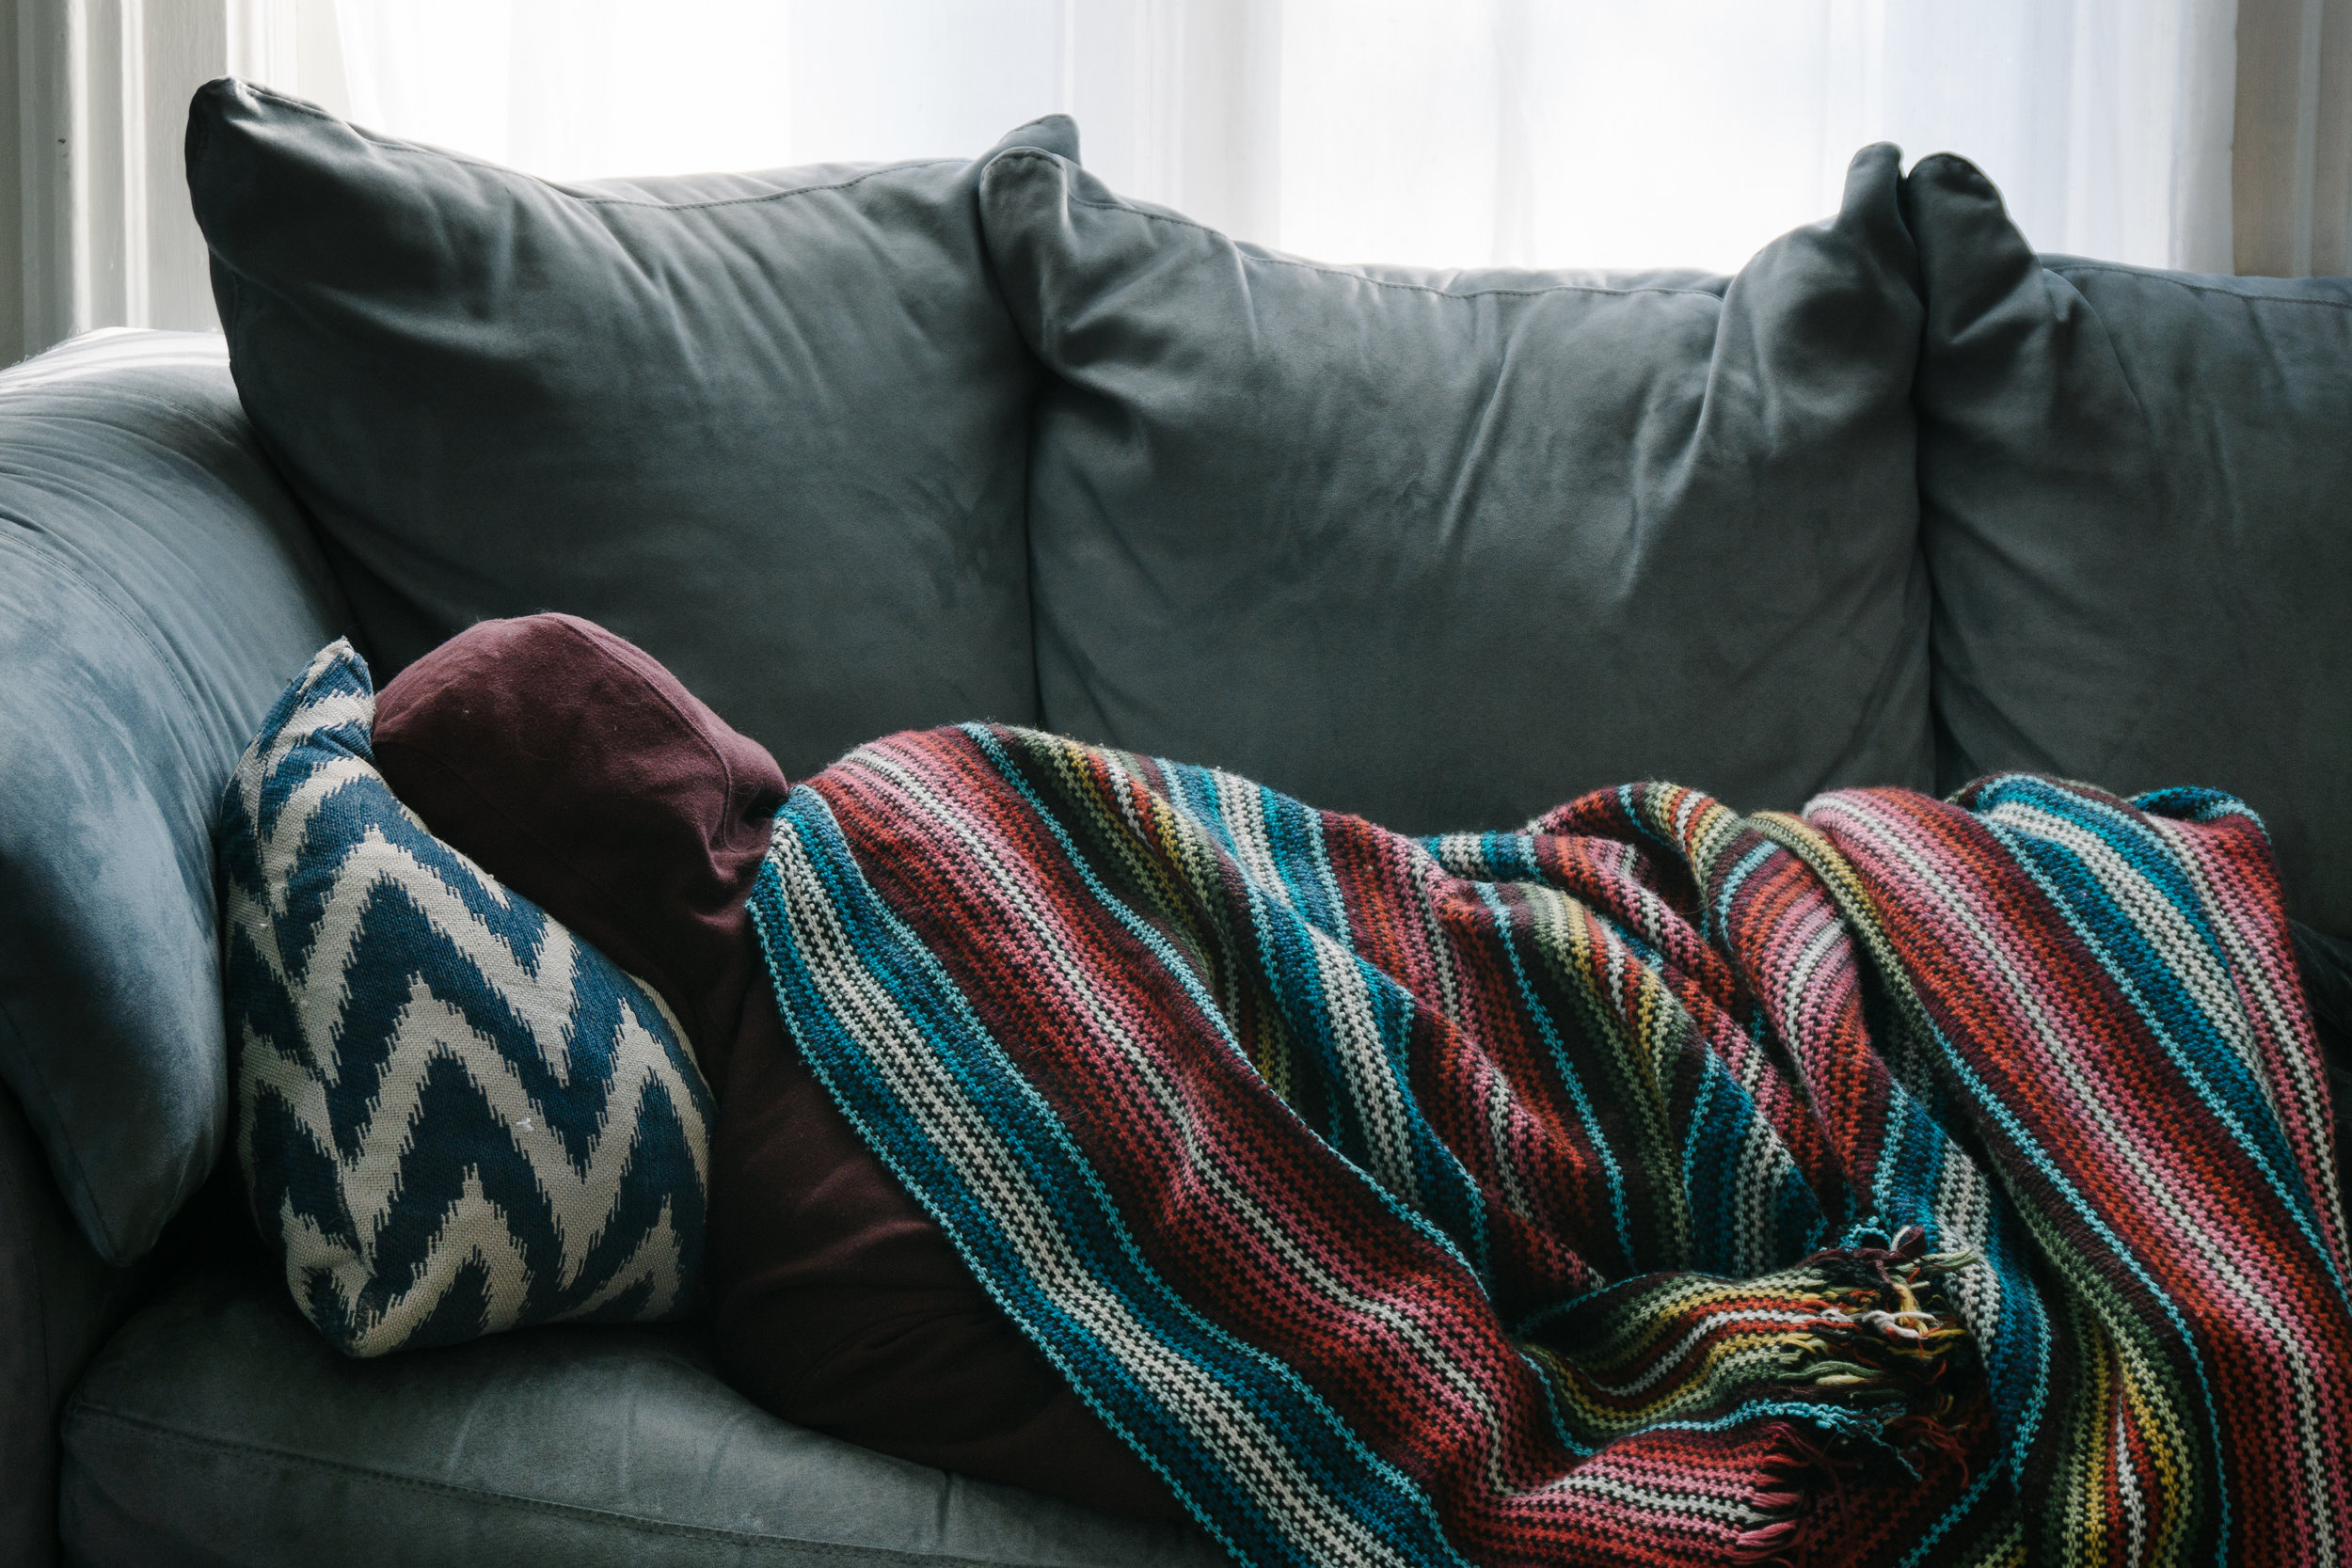 Dealing with the stomach flu while pregnant